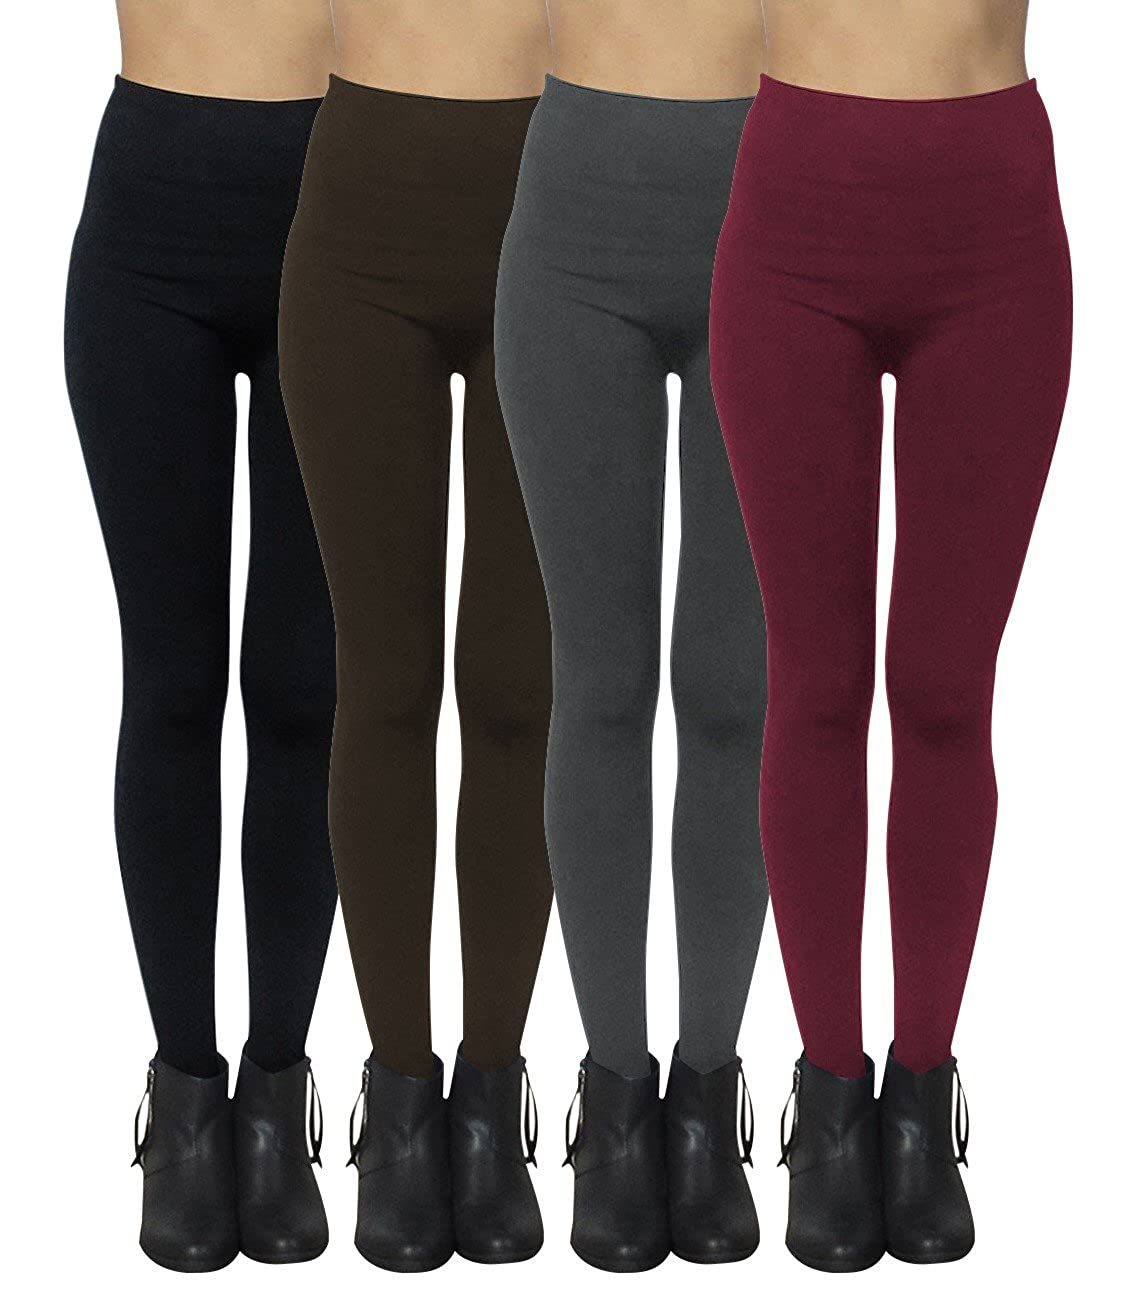 """8ae125461eec2 Machine Wash / Tumble Dry / No Bleach Comfortable seamless fleece lined  leggings for women. One size fits most, up to size XL or 38"""" waist line"""